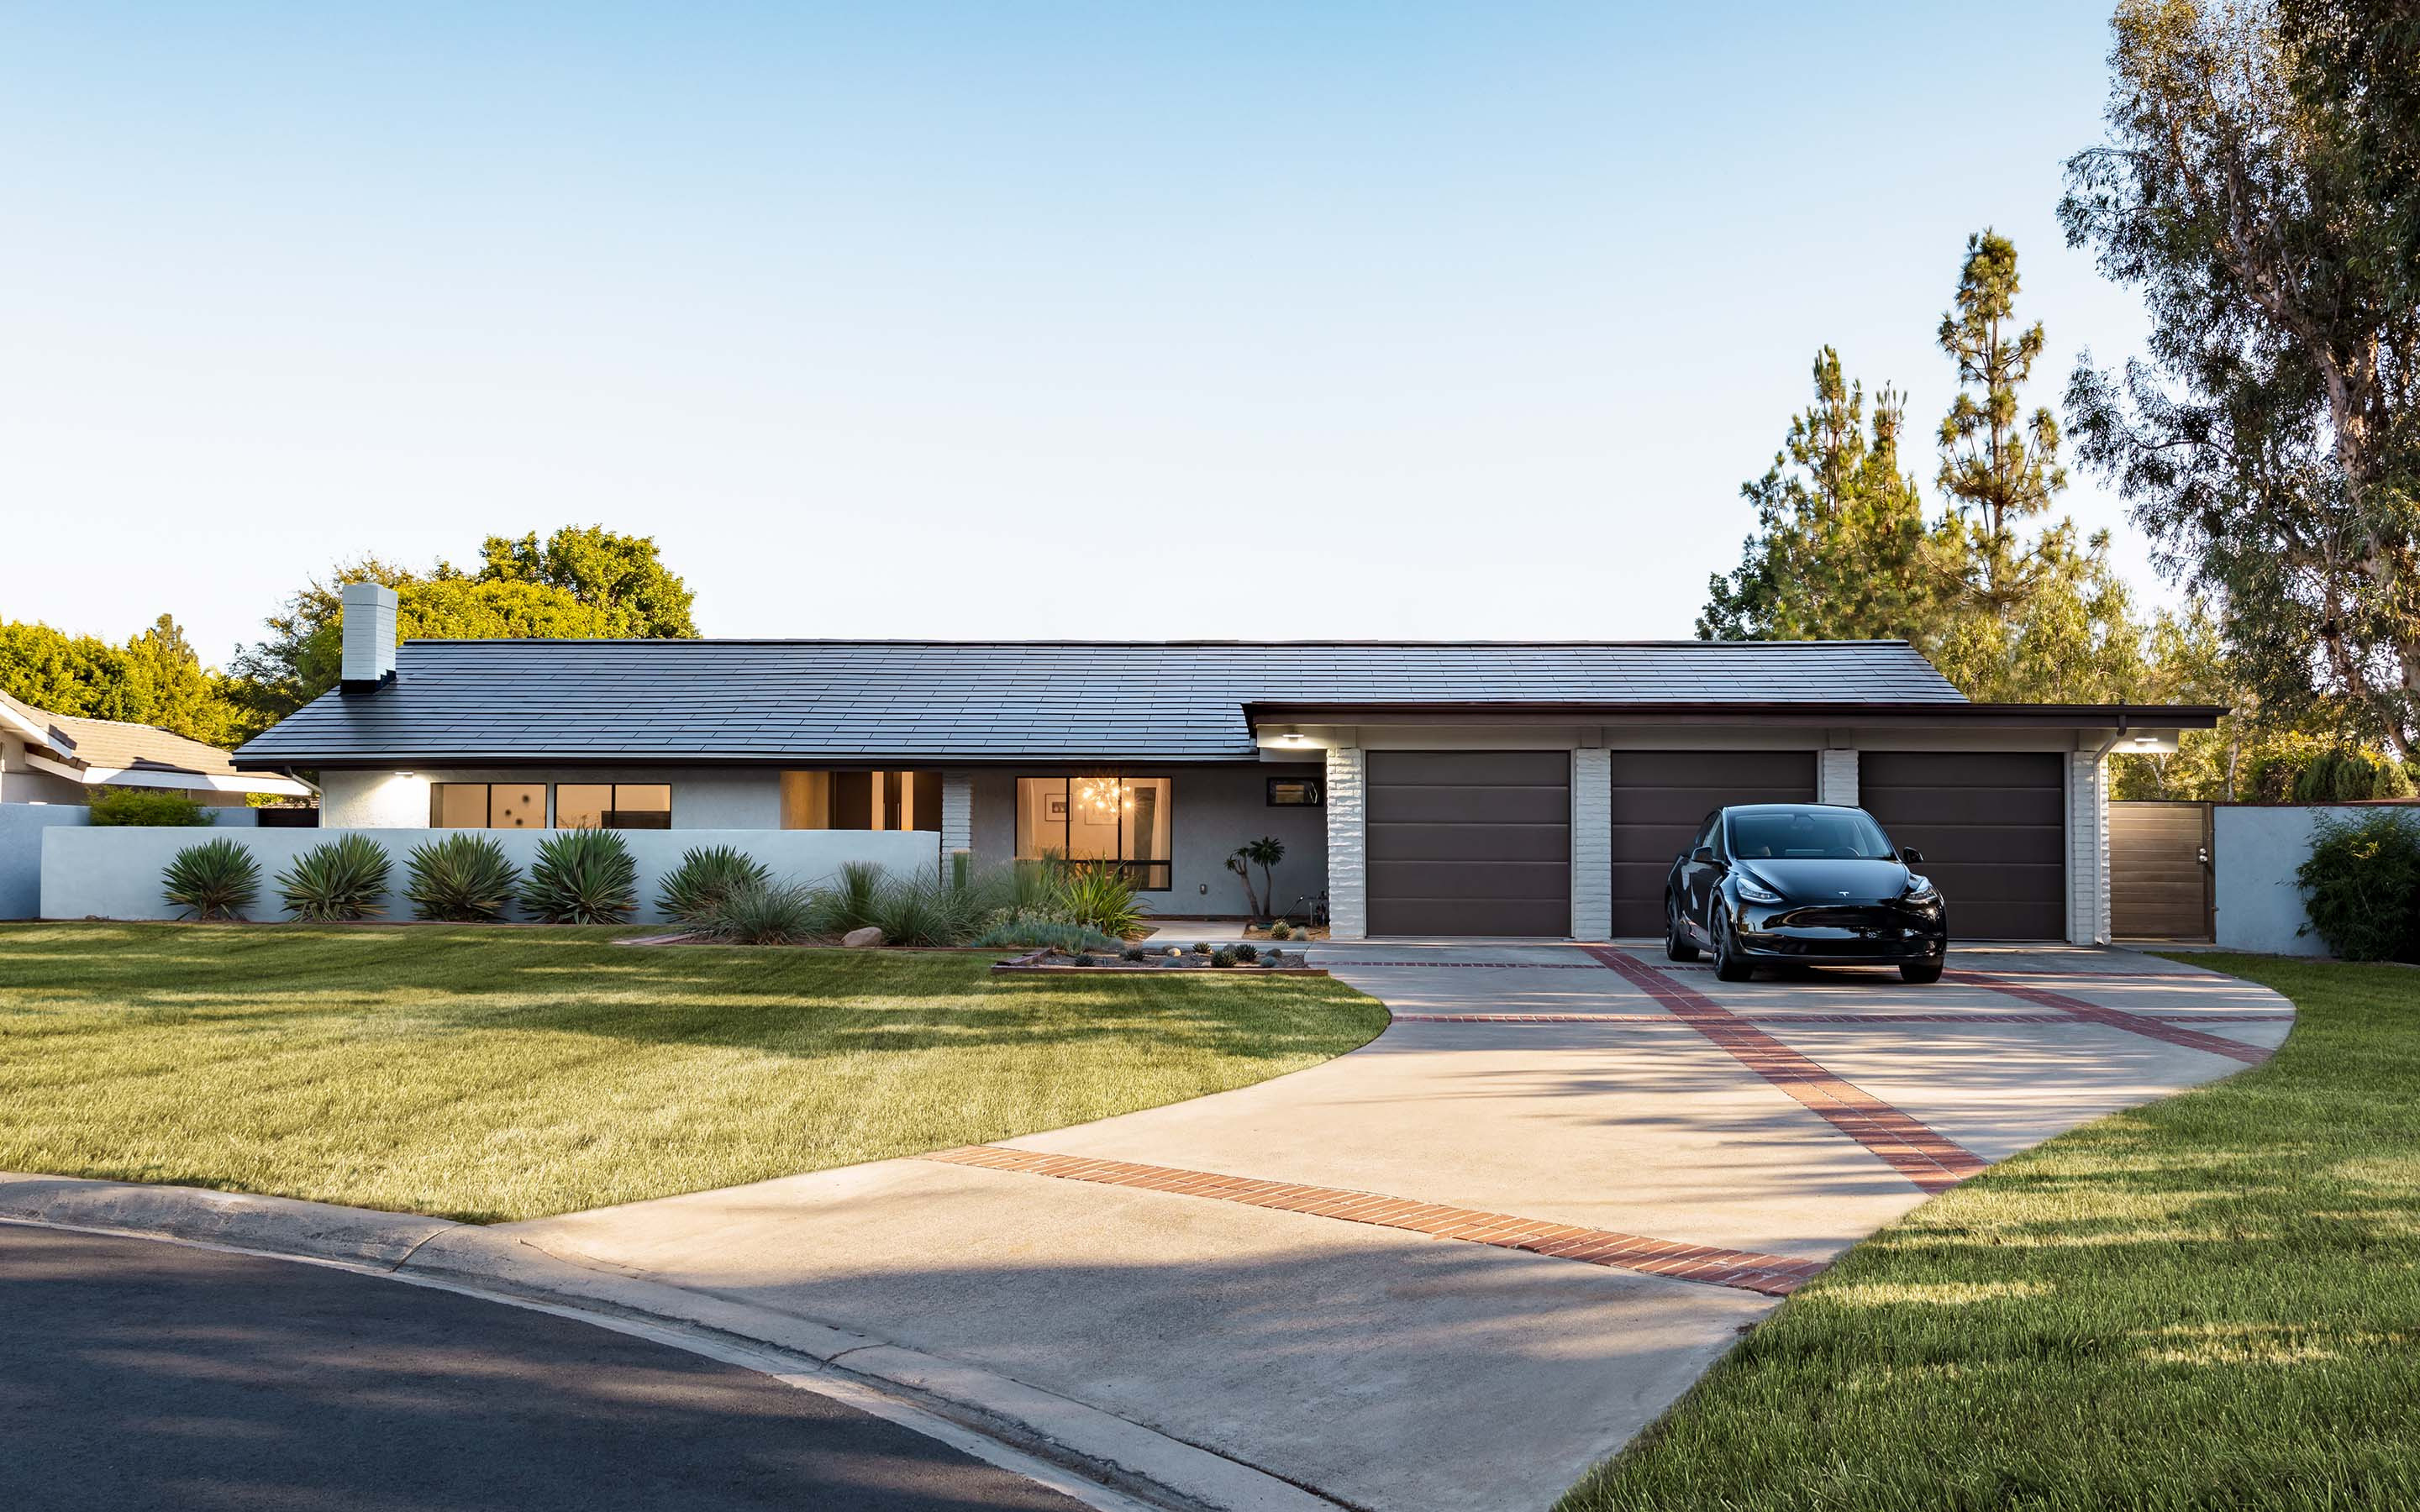 Home with Tesla Solar Roof installed